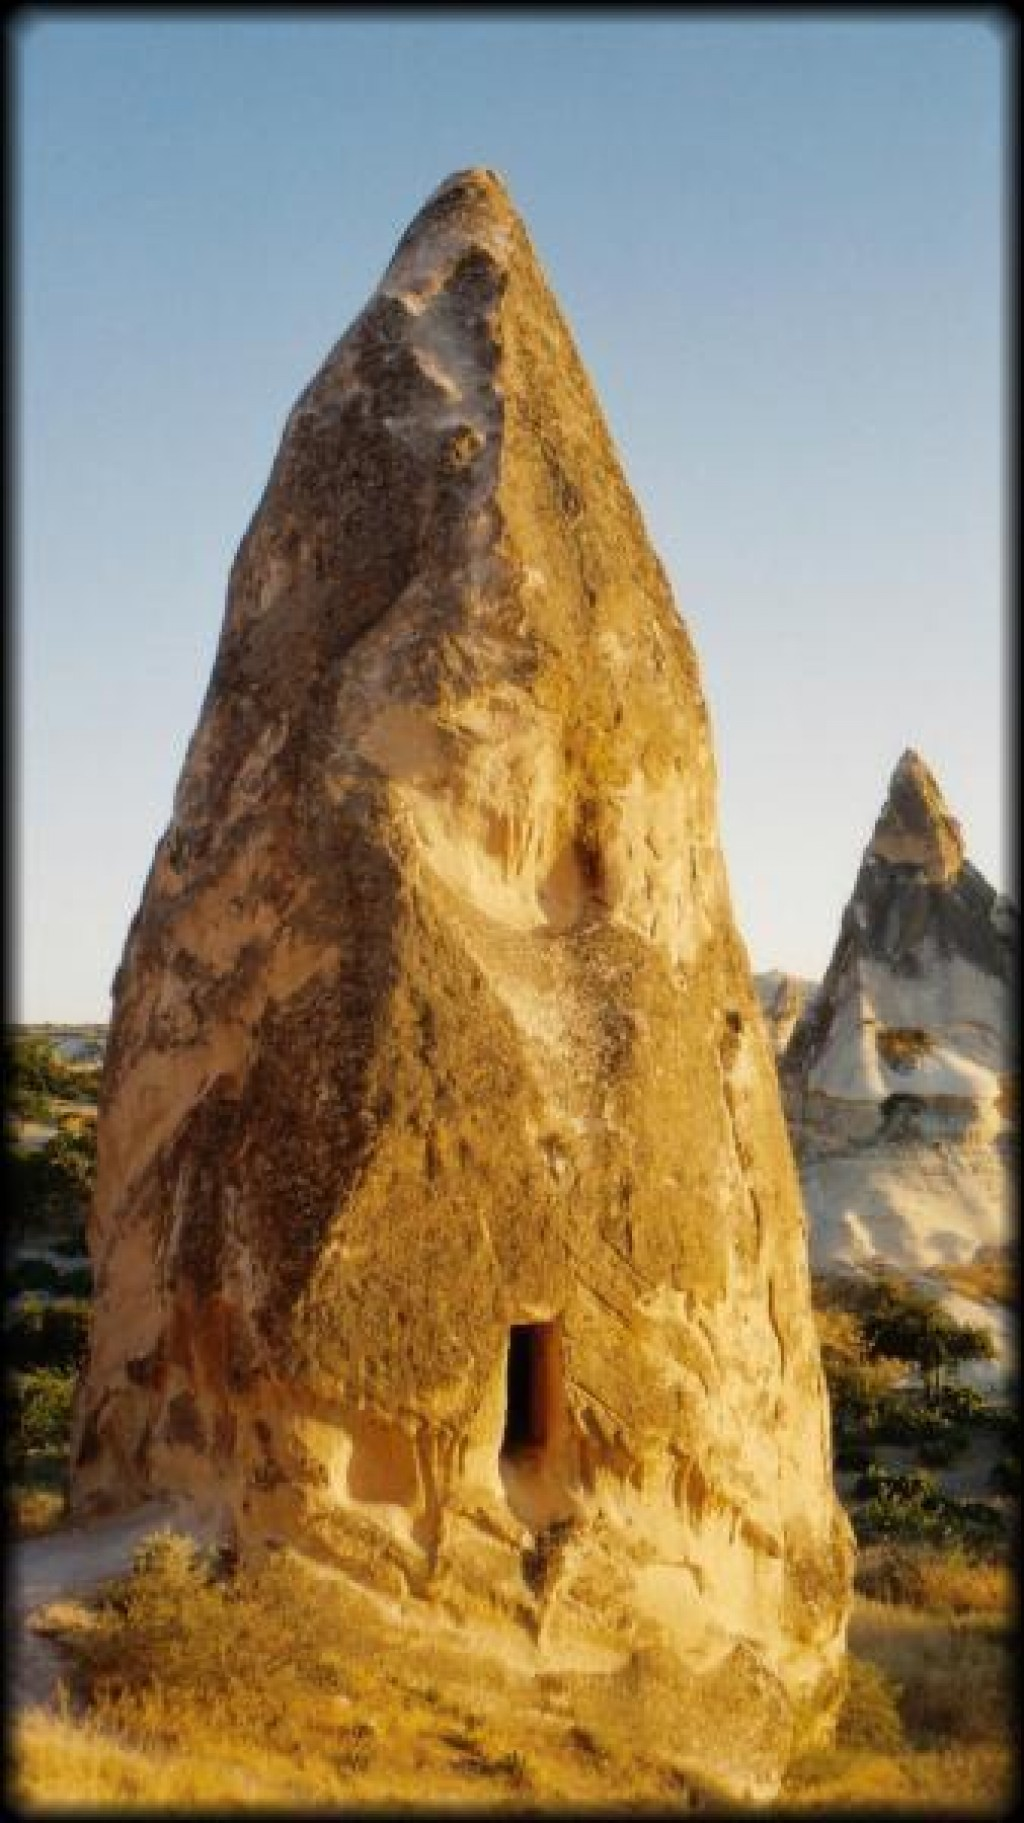 After Pamukkale we headed to Goreme in Cappadocia,